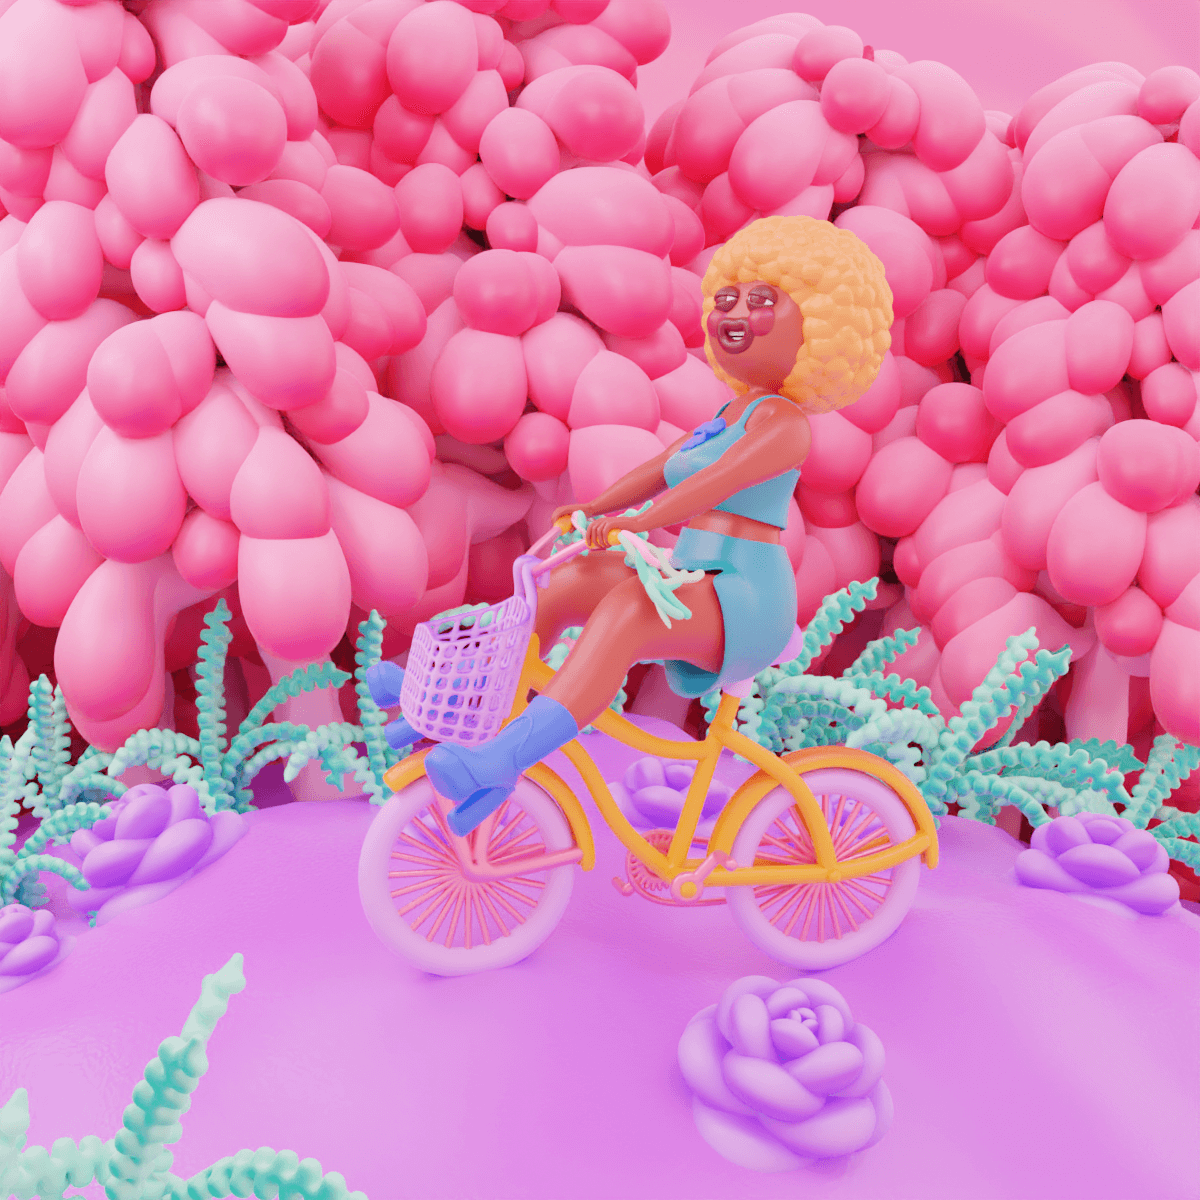 3D Illustration of a girl on a yellow bike with pink wheels, and yellow afro